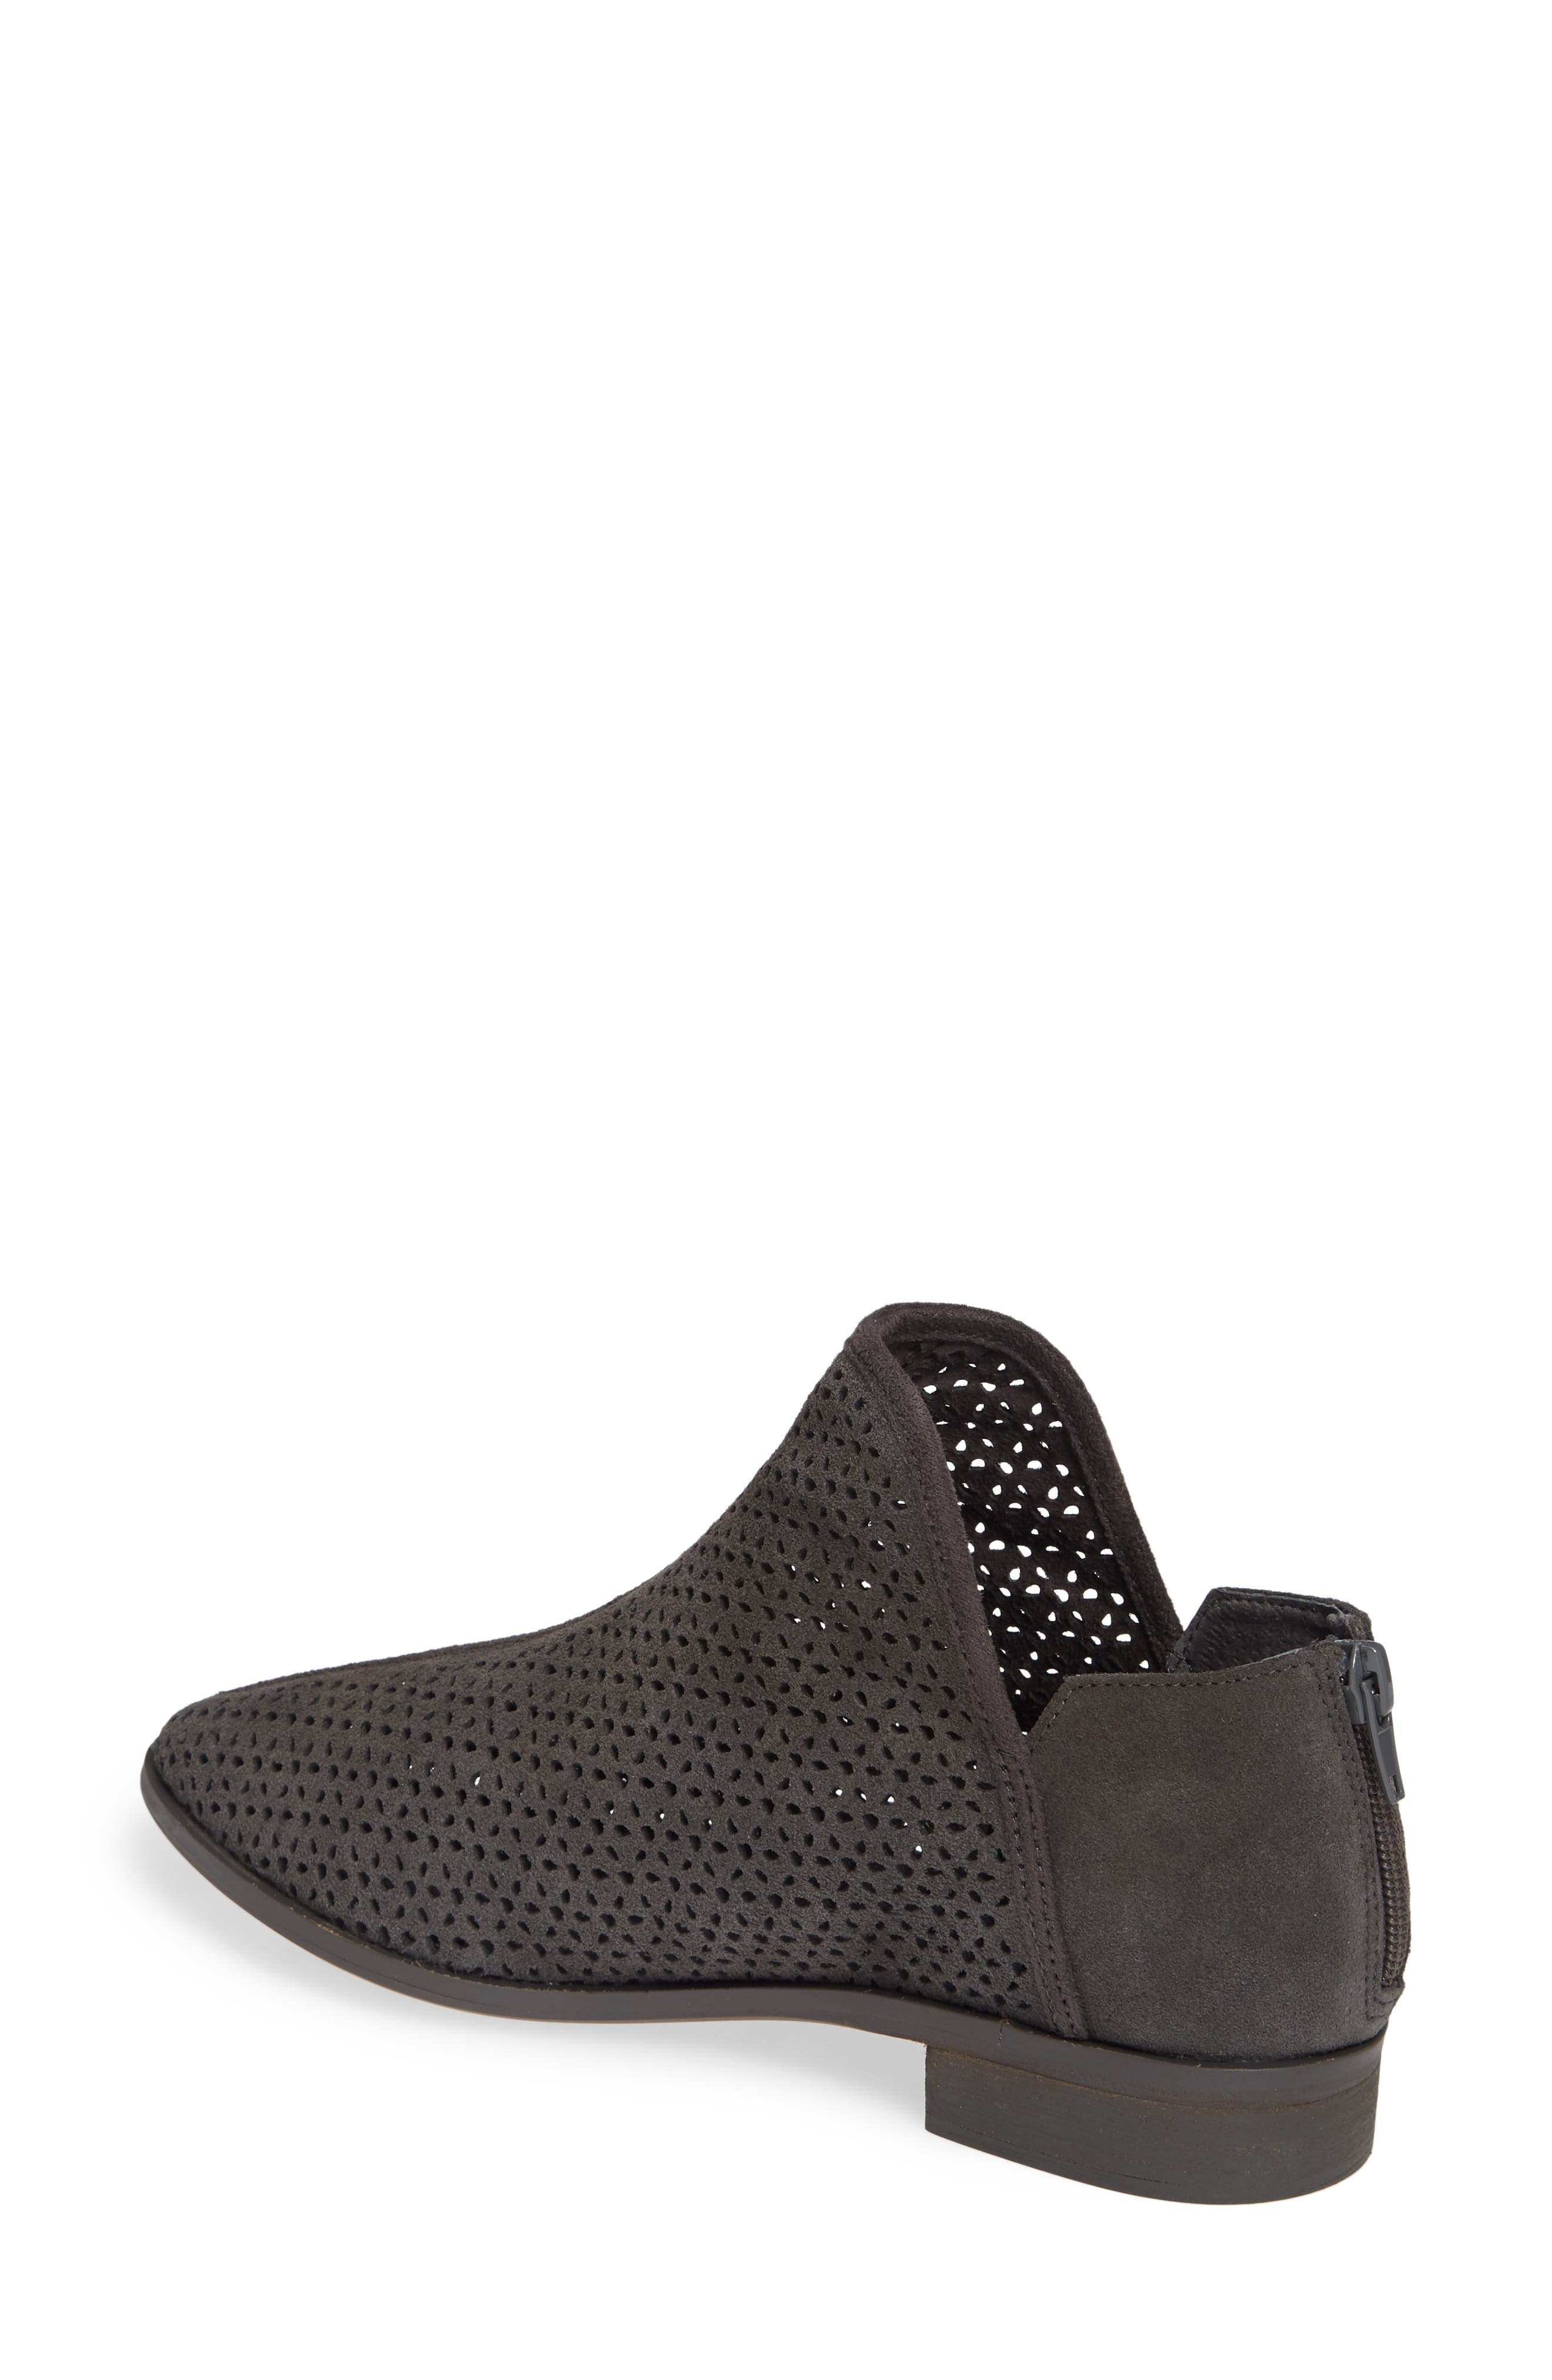 KELSI DAGGER BROOKLYN, Alley Perforated Bootie, Alternate thumbnail 2, color, CHARCOAL